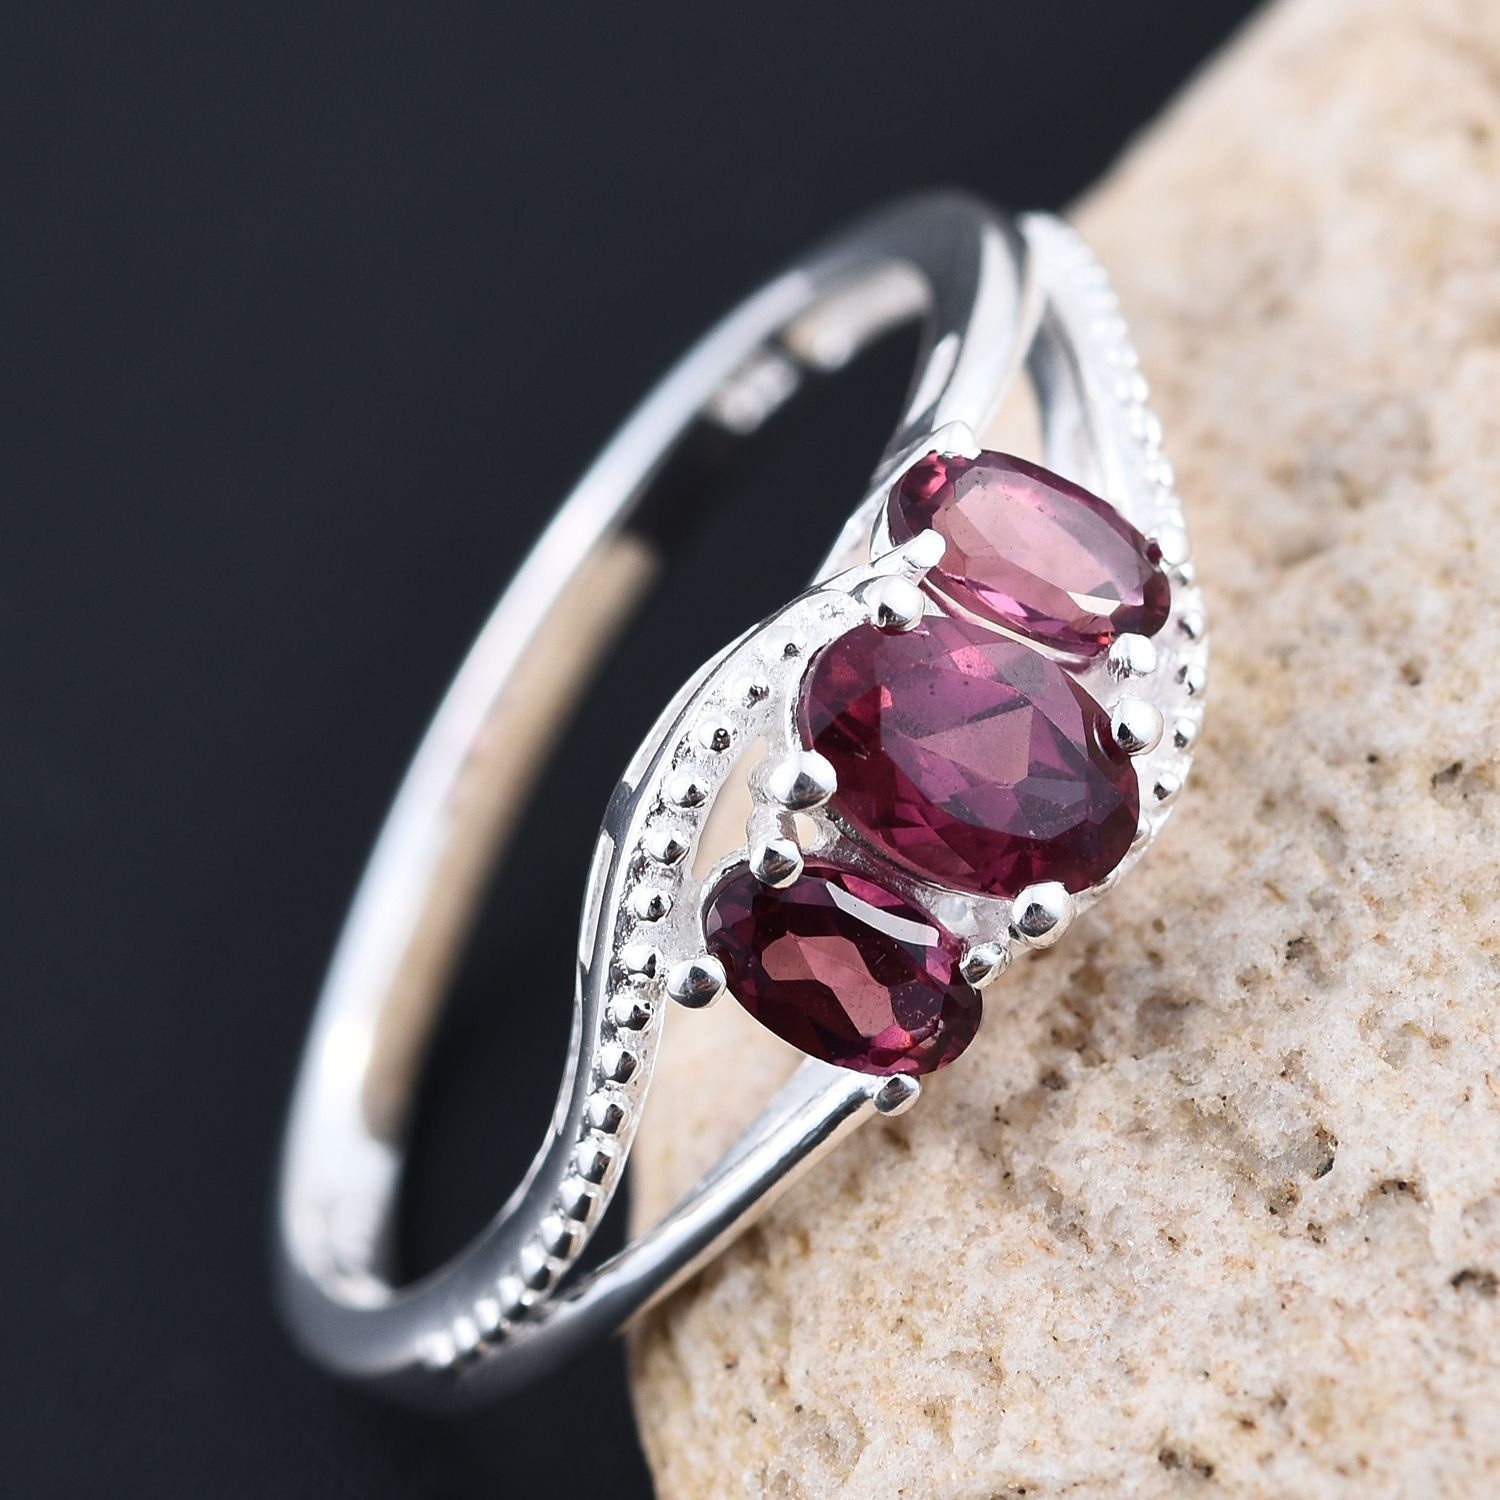 rings ireland white diamond rhodolite products campbell garnet ring engagement jewellers gold dublin halo